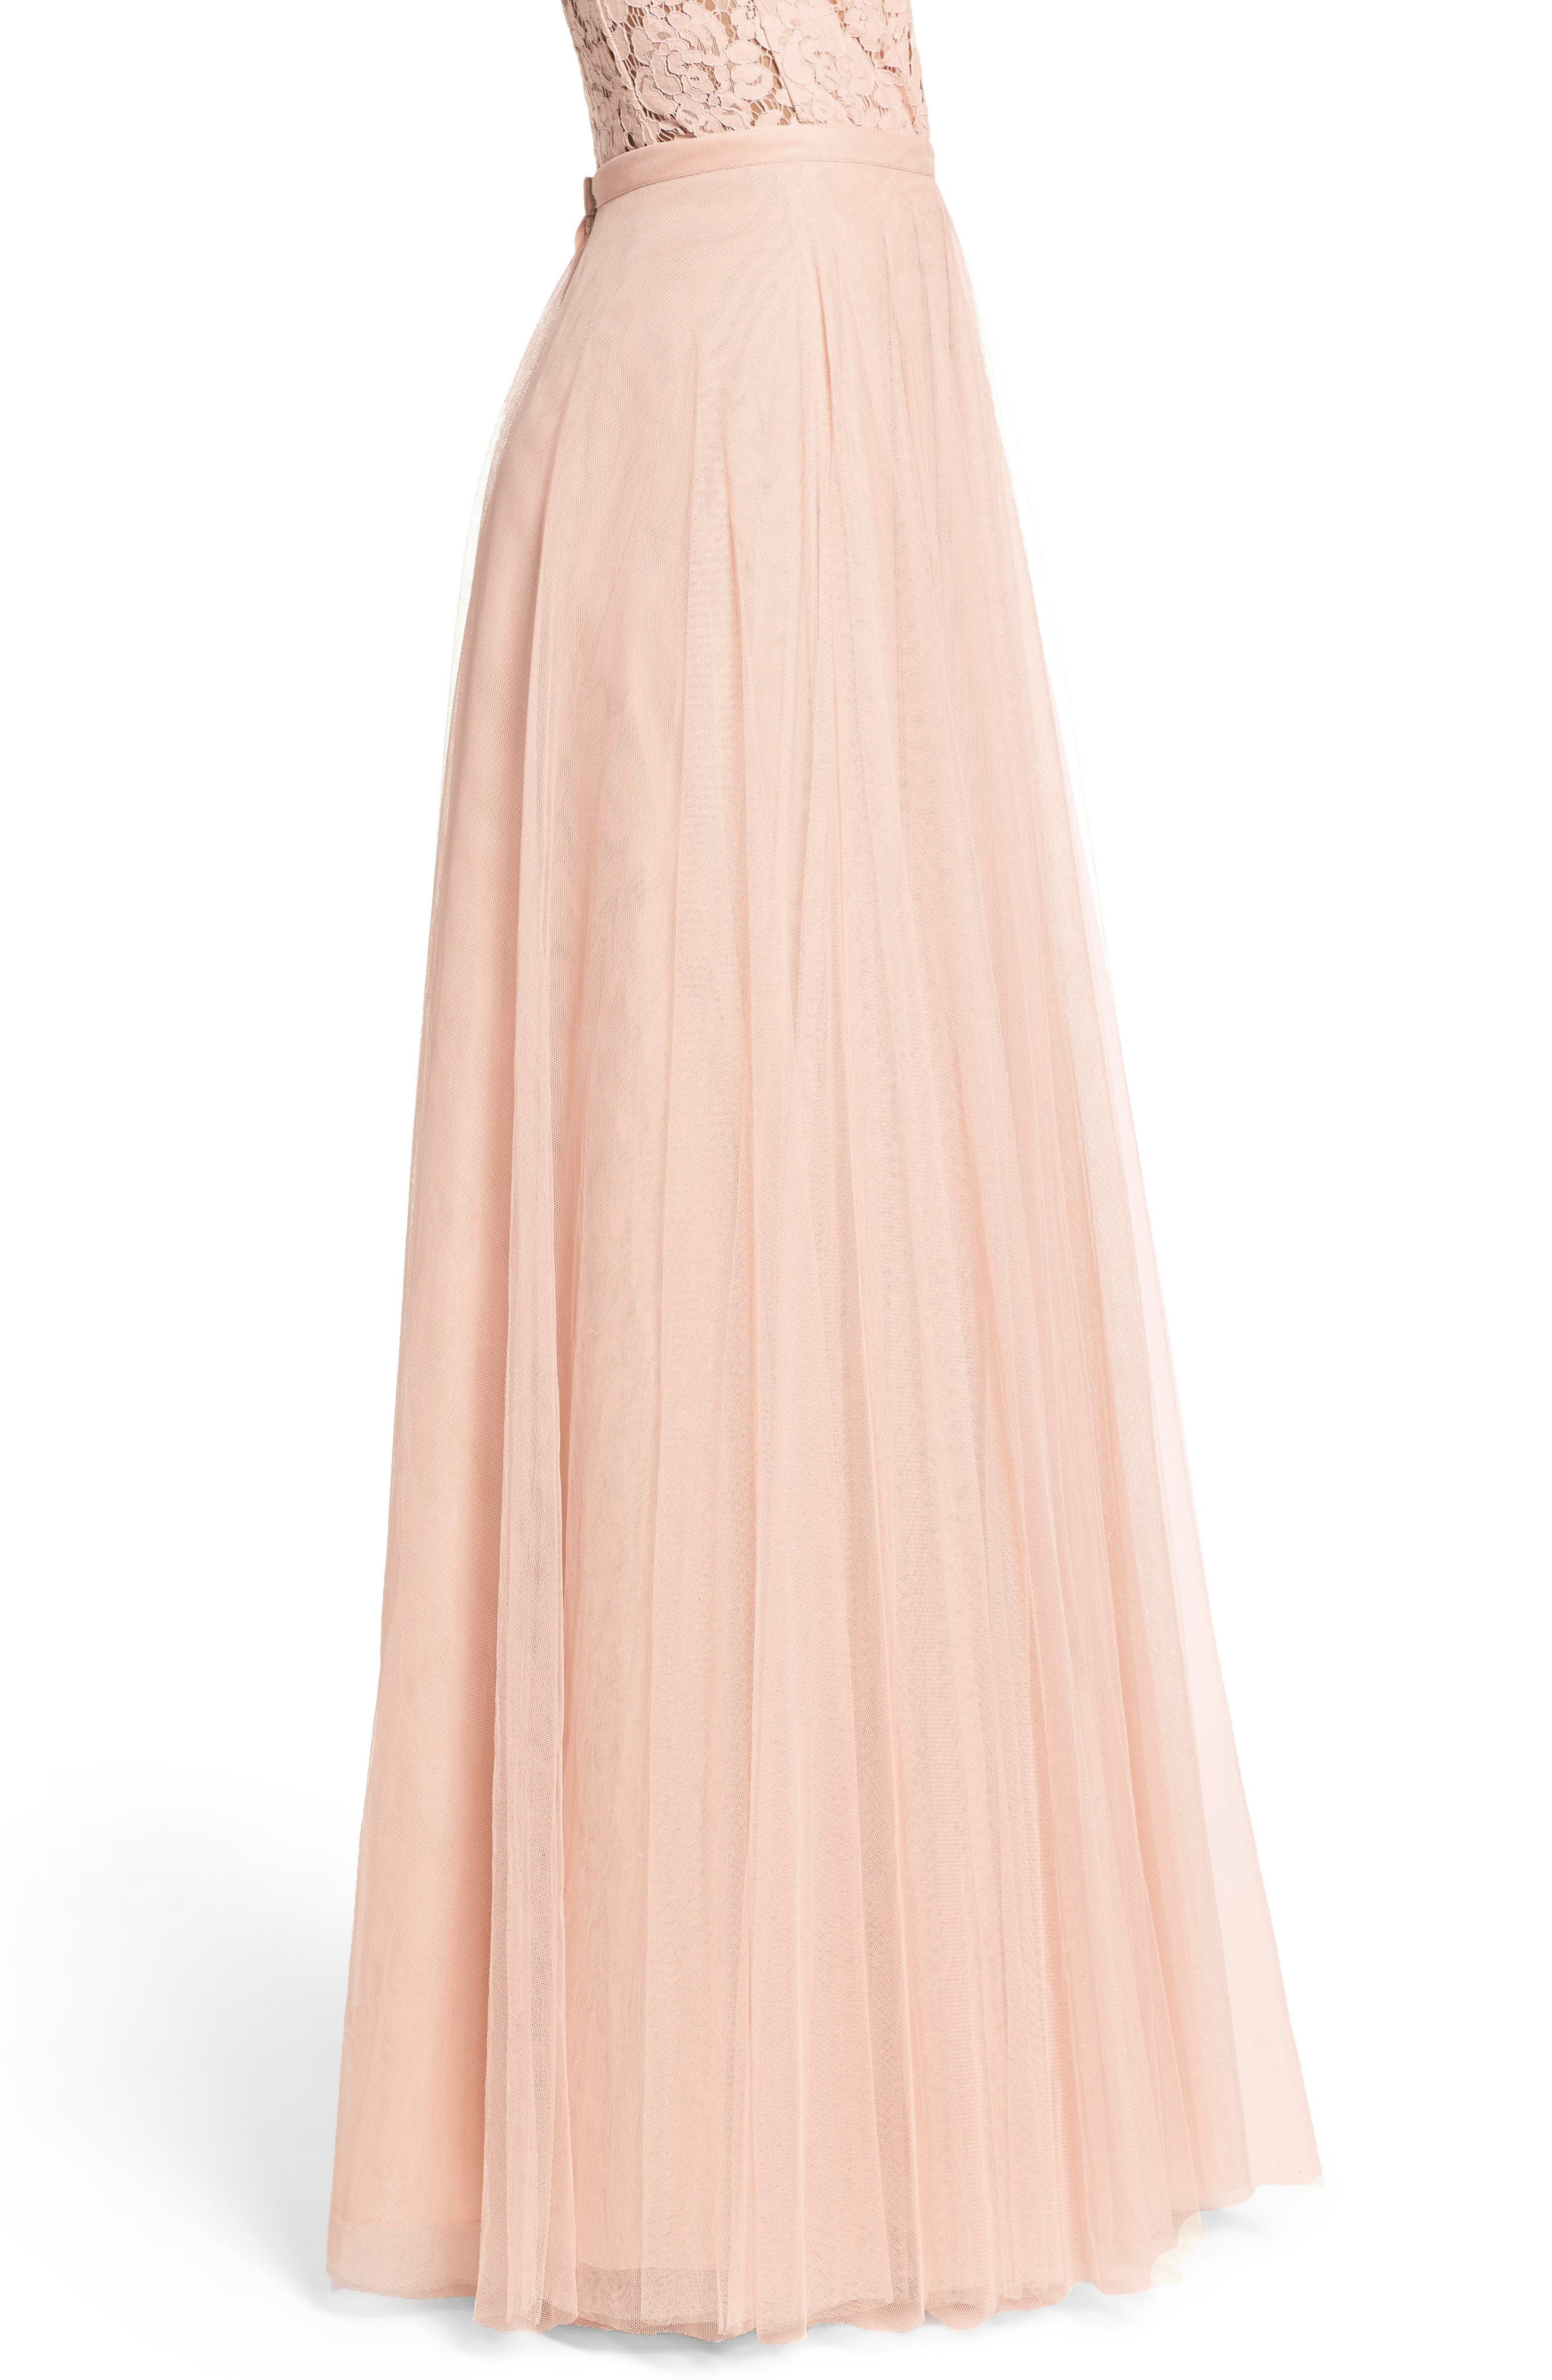 Winslow Long Tulle A-Line Skirt,                             Alternate thumbnail 4, color,                             CAMEO PINK